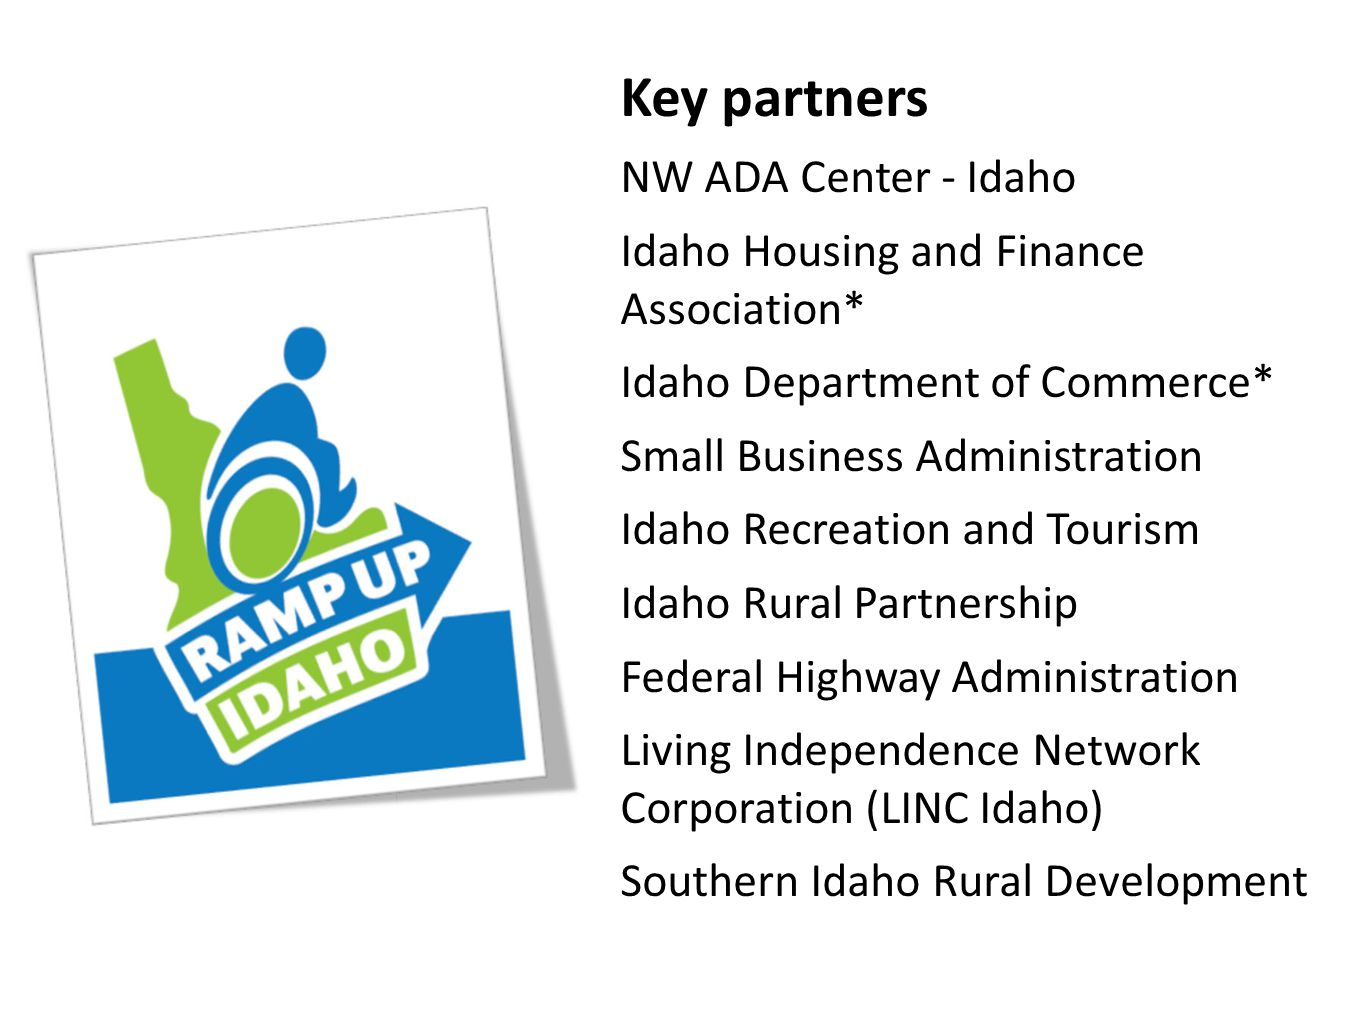 Key partners NW ADA Center - Idaho Idaho Housing and Finance Association* Idaho Department of Commerce* Small Business Administration Idaho Recreation and Tourism Idaho Rural Partnership Federal Highway Administration Living Independence Network Corporation (LINC Idaho) Southern Idaho Rural Development